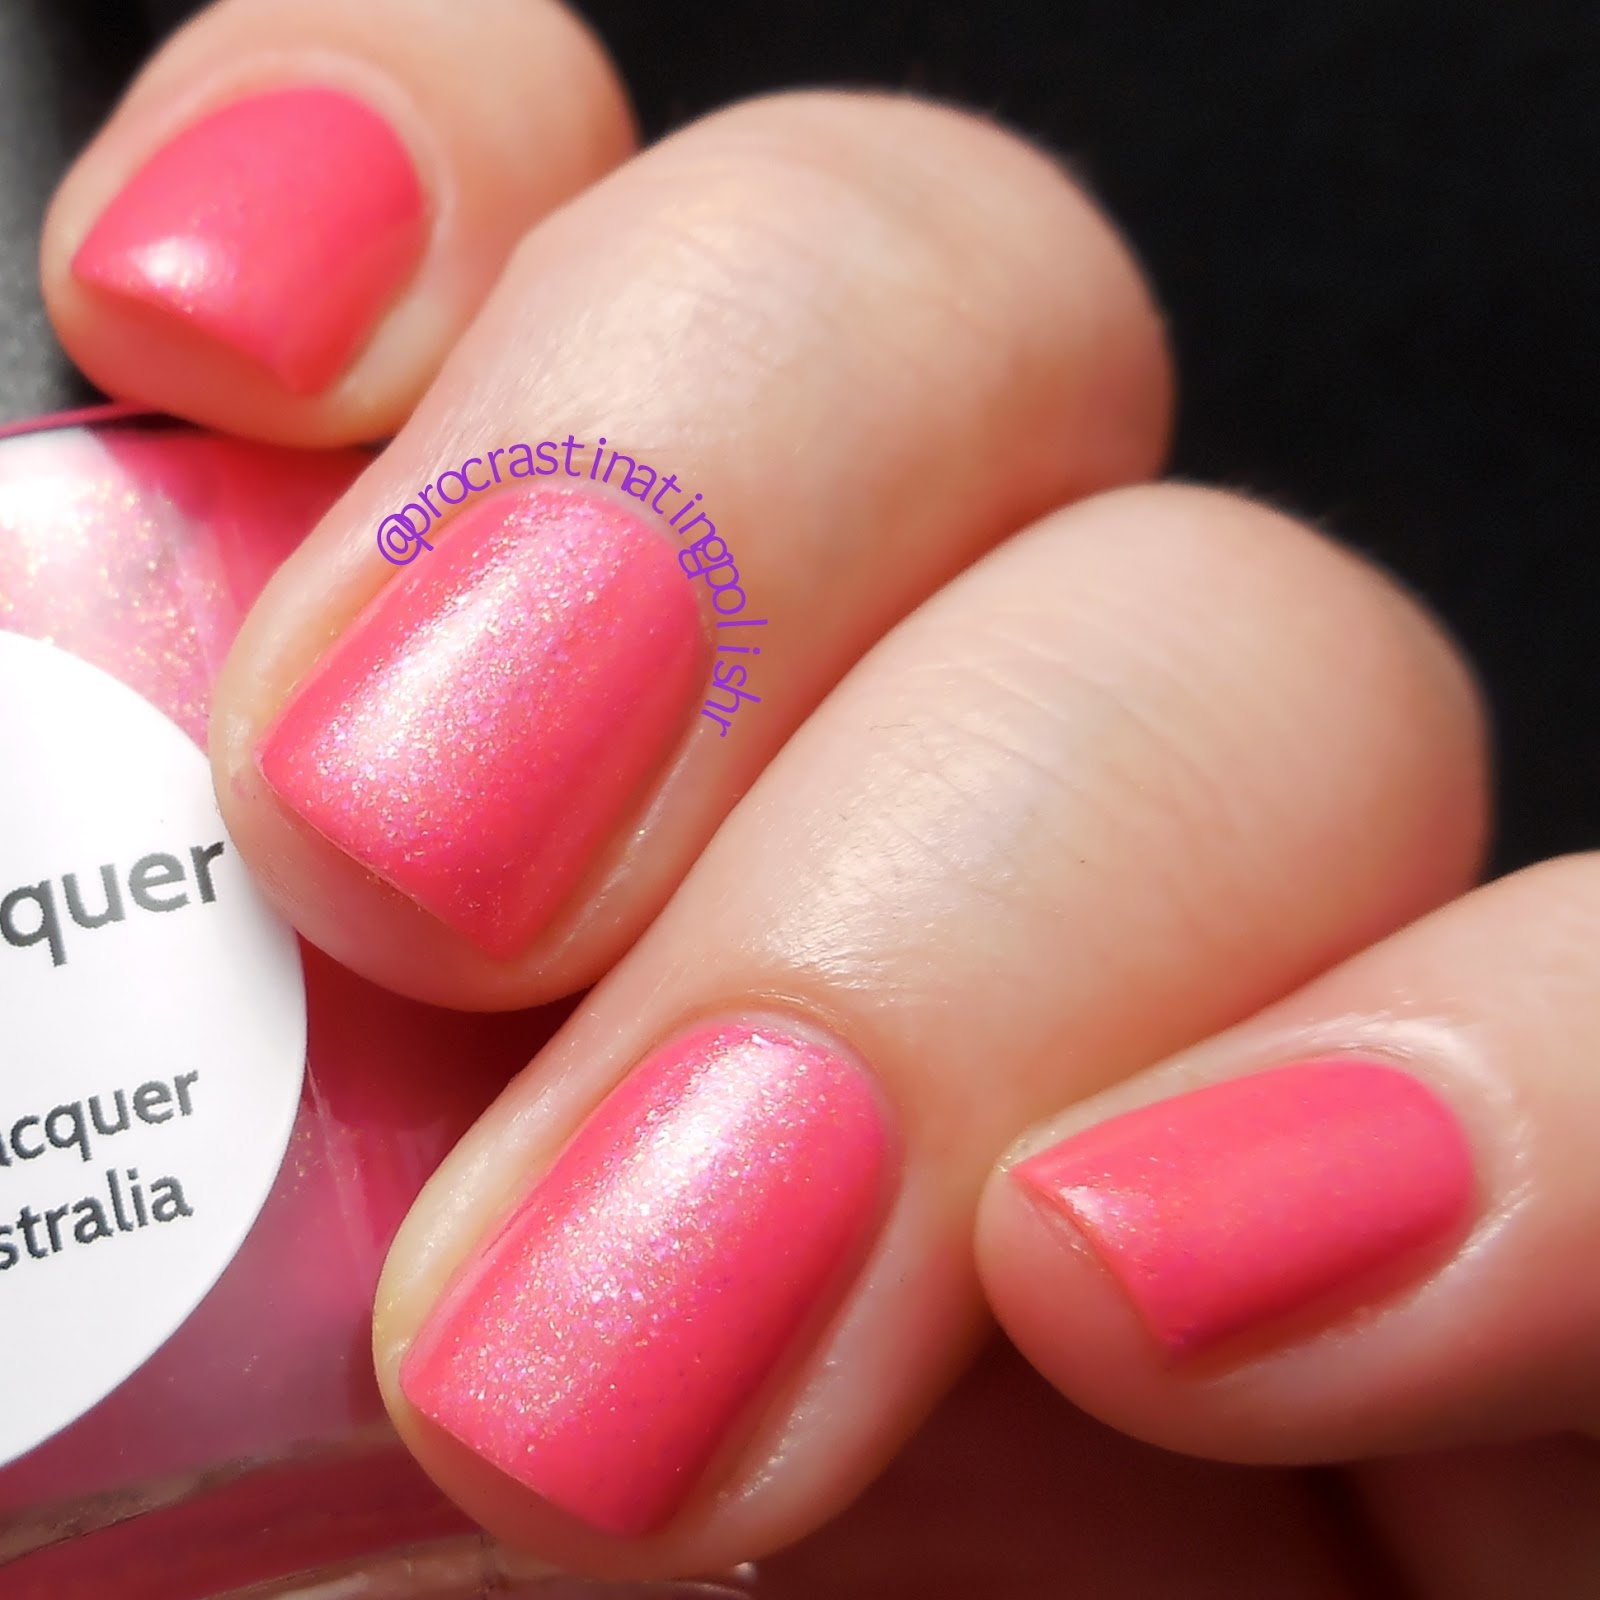 Lilypad Lacquer - Frogalicious